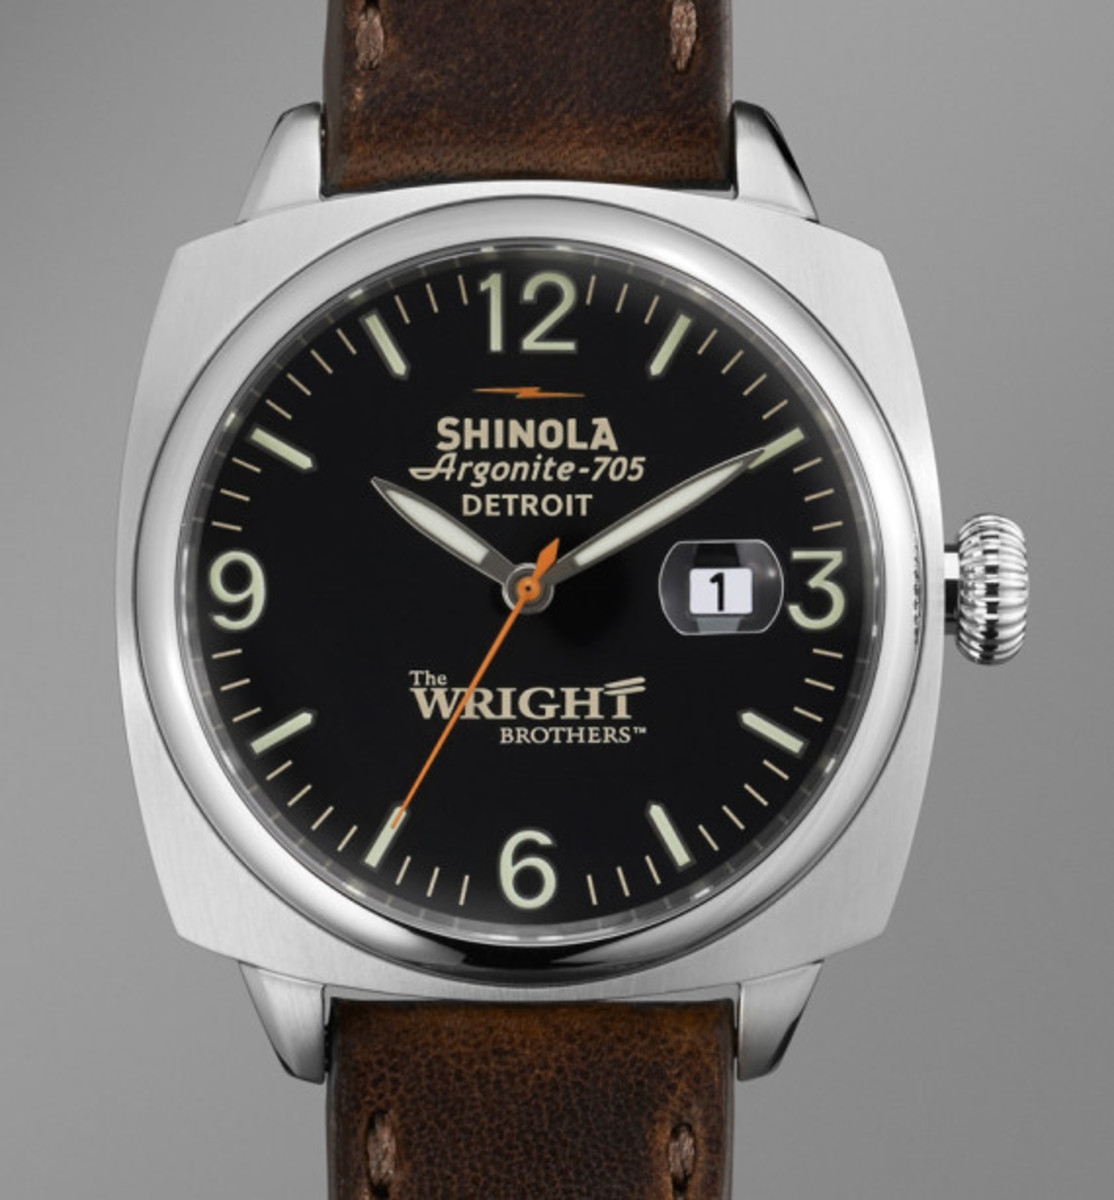 wright-brothers-shinola-great-american-series-limited-edition-watch-and-bicycle-03